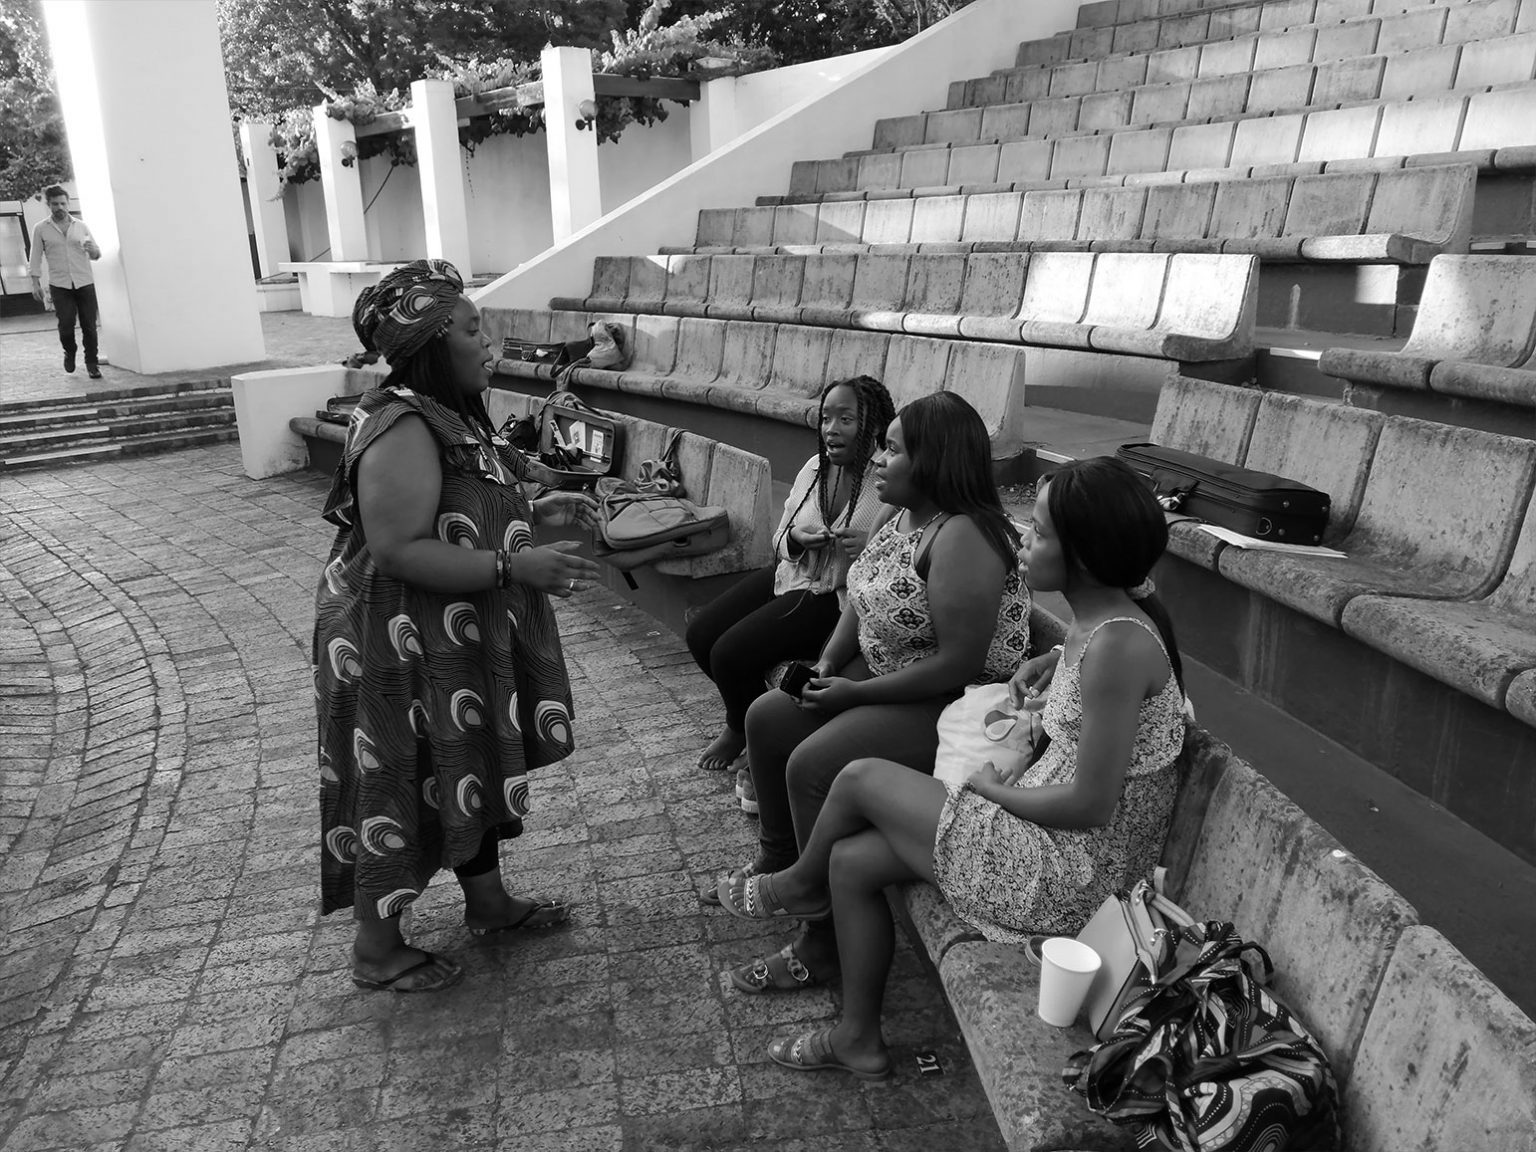 Shades-of-Africa-04-Oude-Libertas-Rehearsals